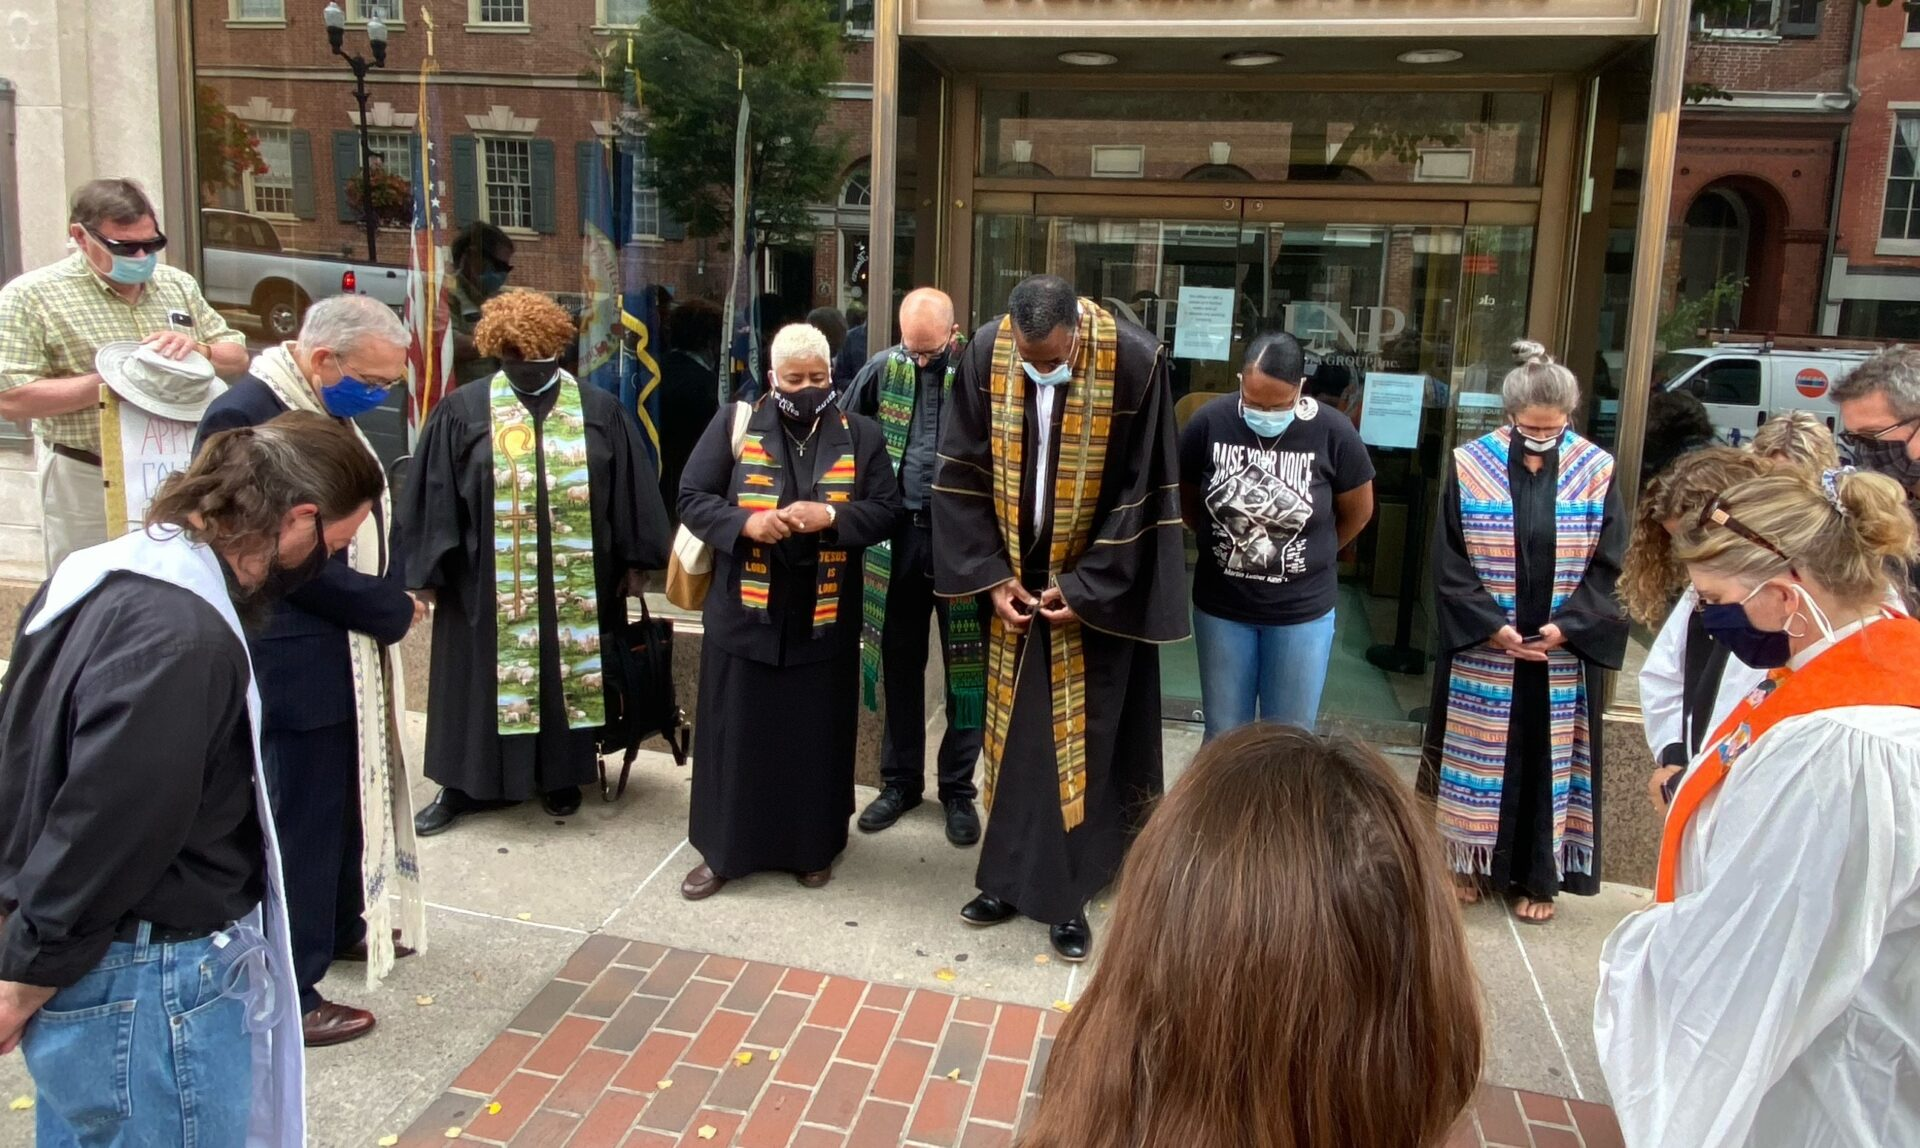 The Rev. Edward Bailey, center, and other clergy pray before marching through Penn Square to Fulton Bank on Thursday, Sept. 17, 2020. (Photo: Audrey Lilley)